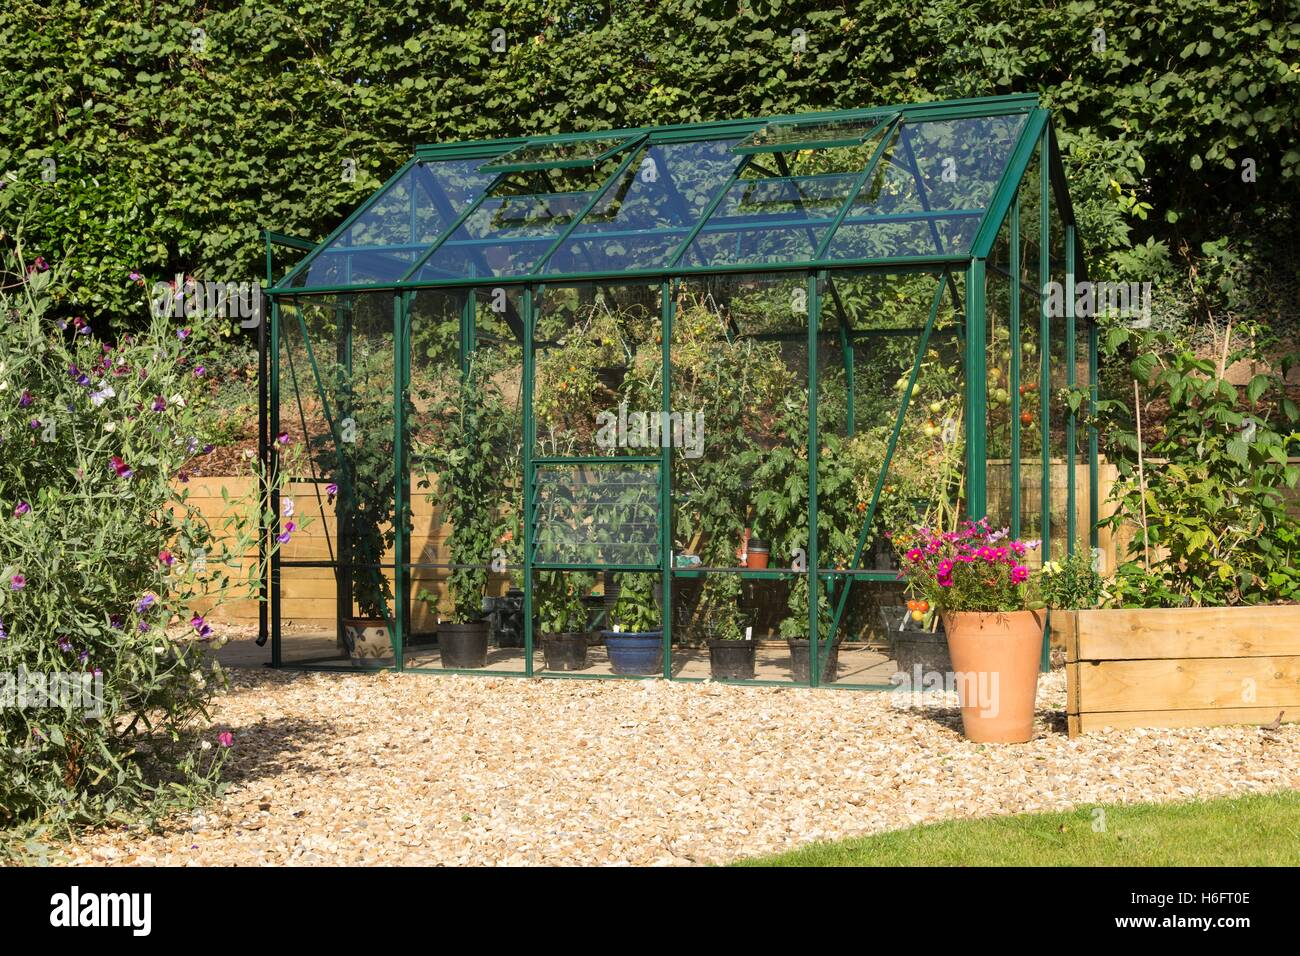 A green metal greenhouse, vented roof windows, sliding doors and garden seat,  growing tomatoes and chrysanthemums Stock Photo